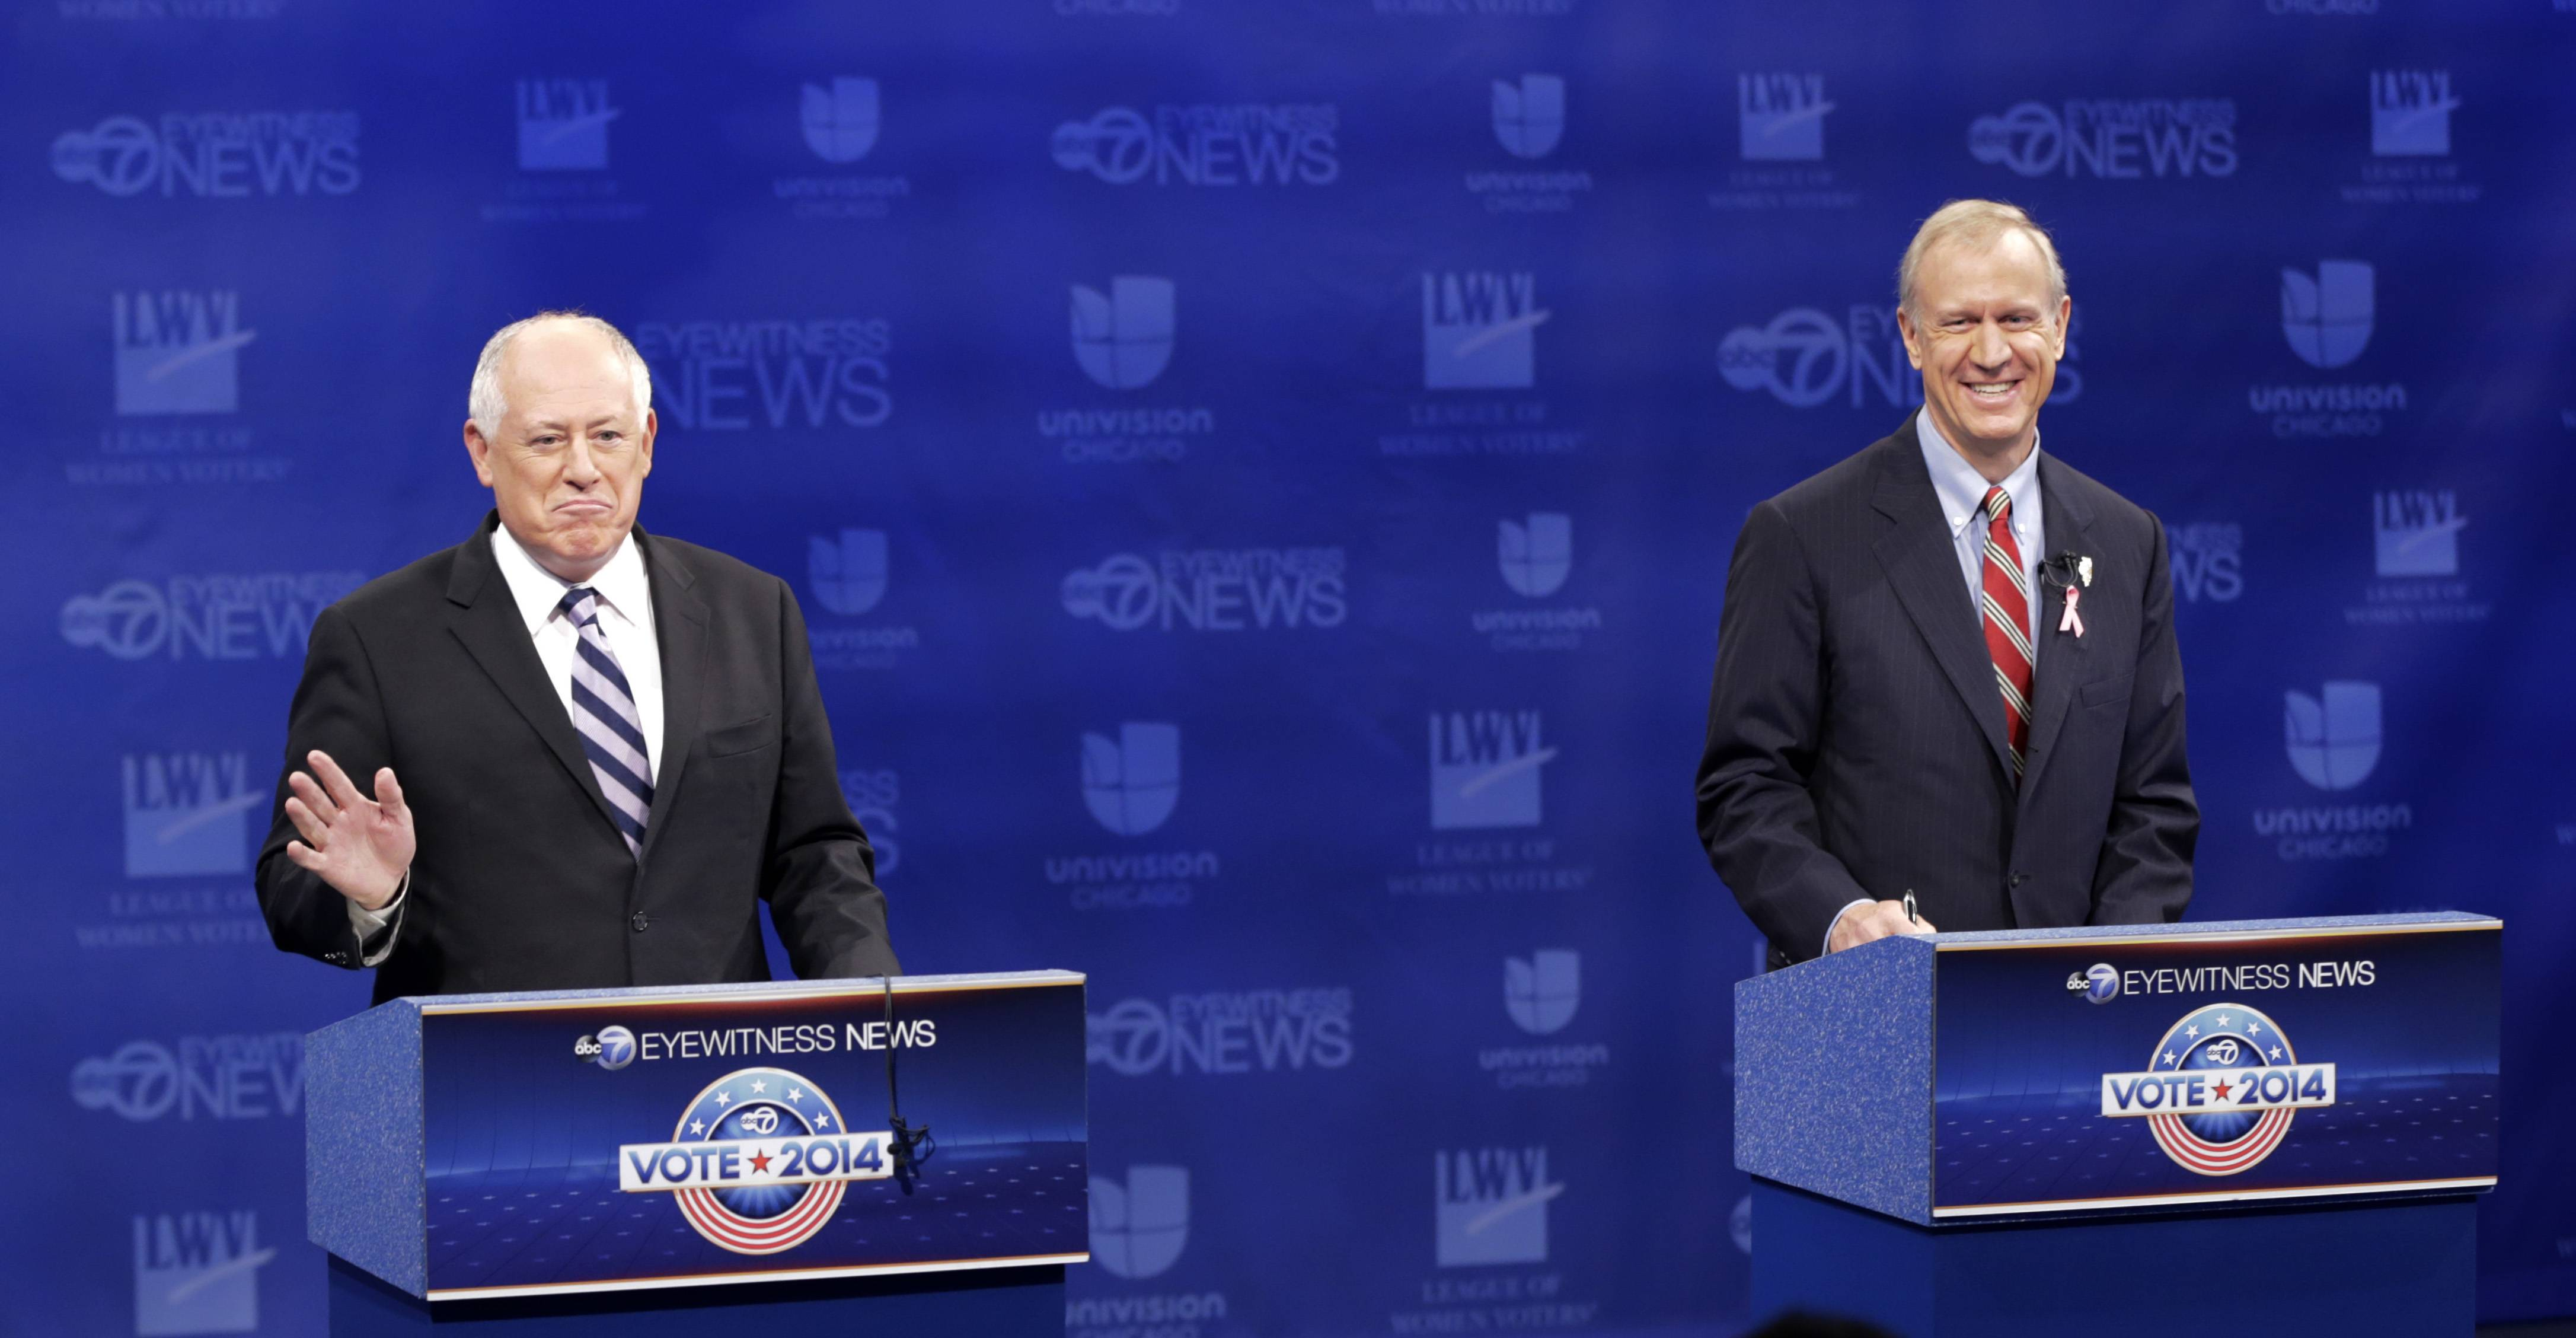 Democratic Gov. Pat Quinn, left, and Republican challenger Bruce Rauner met for a third debate this week. The winner will face a pile of tough decisions over the next four years.